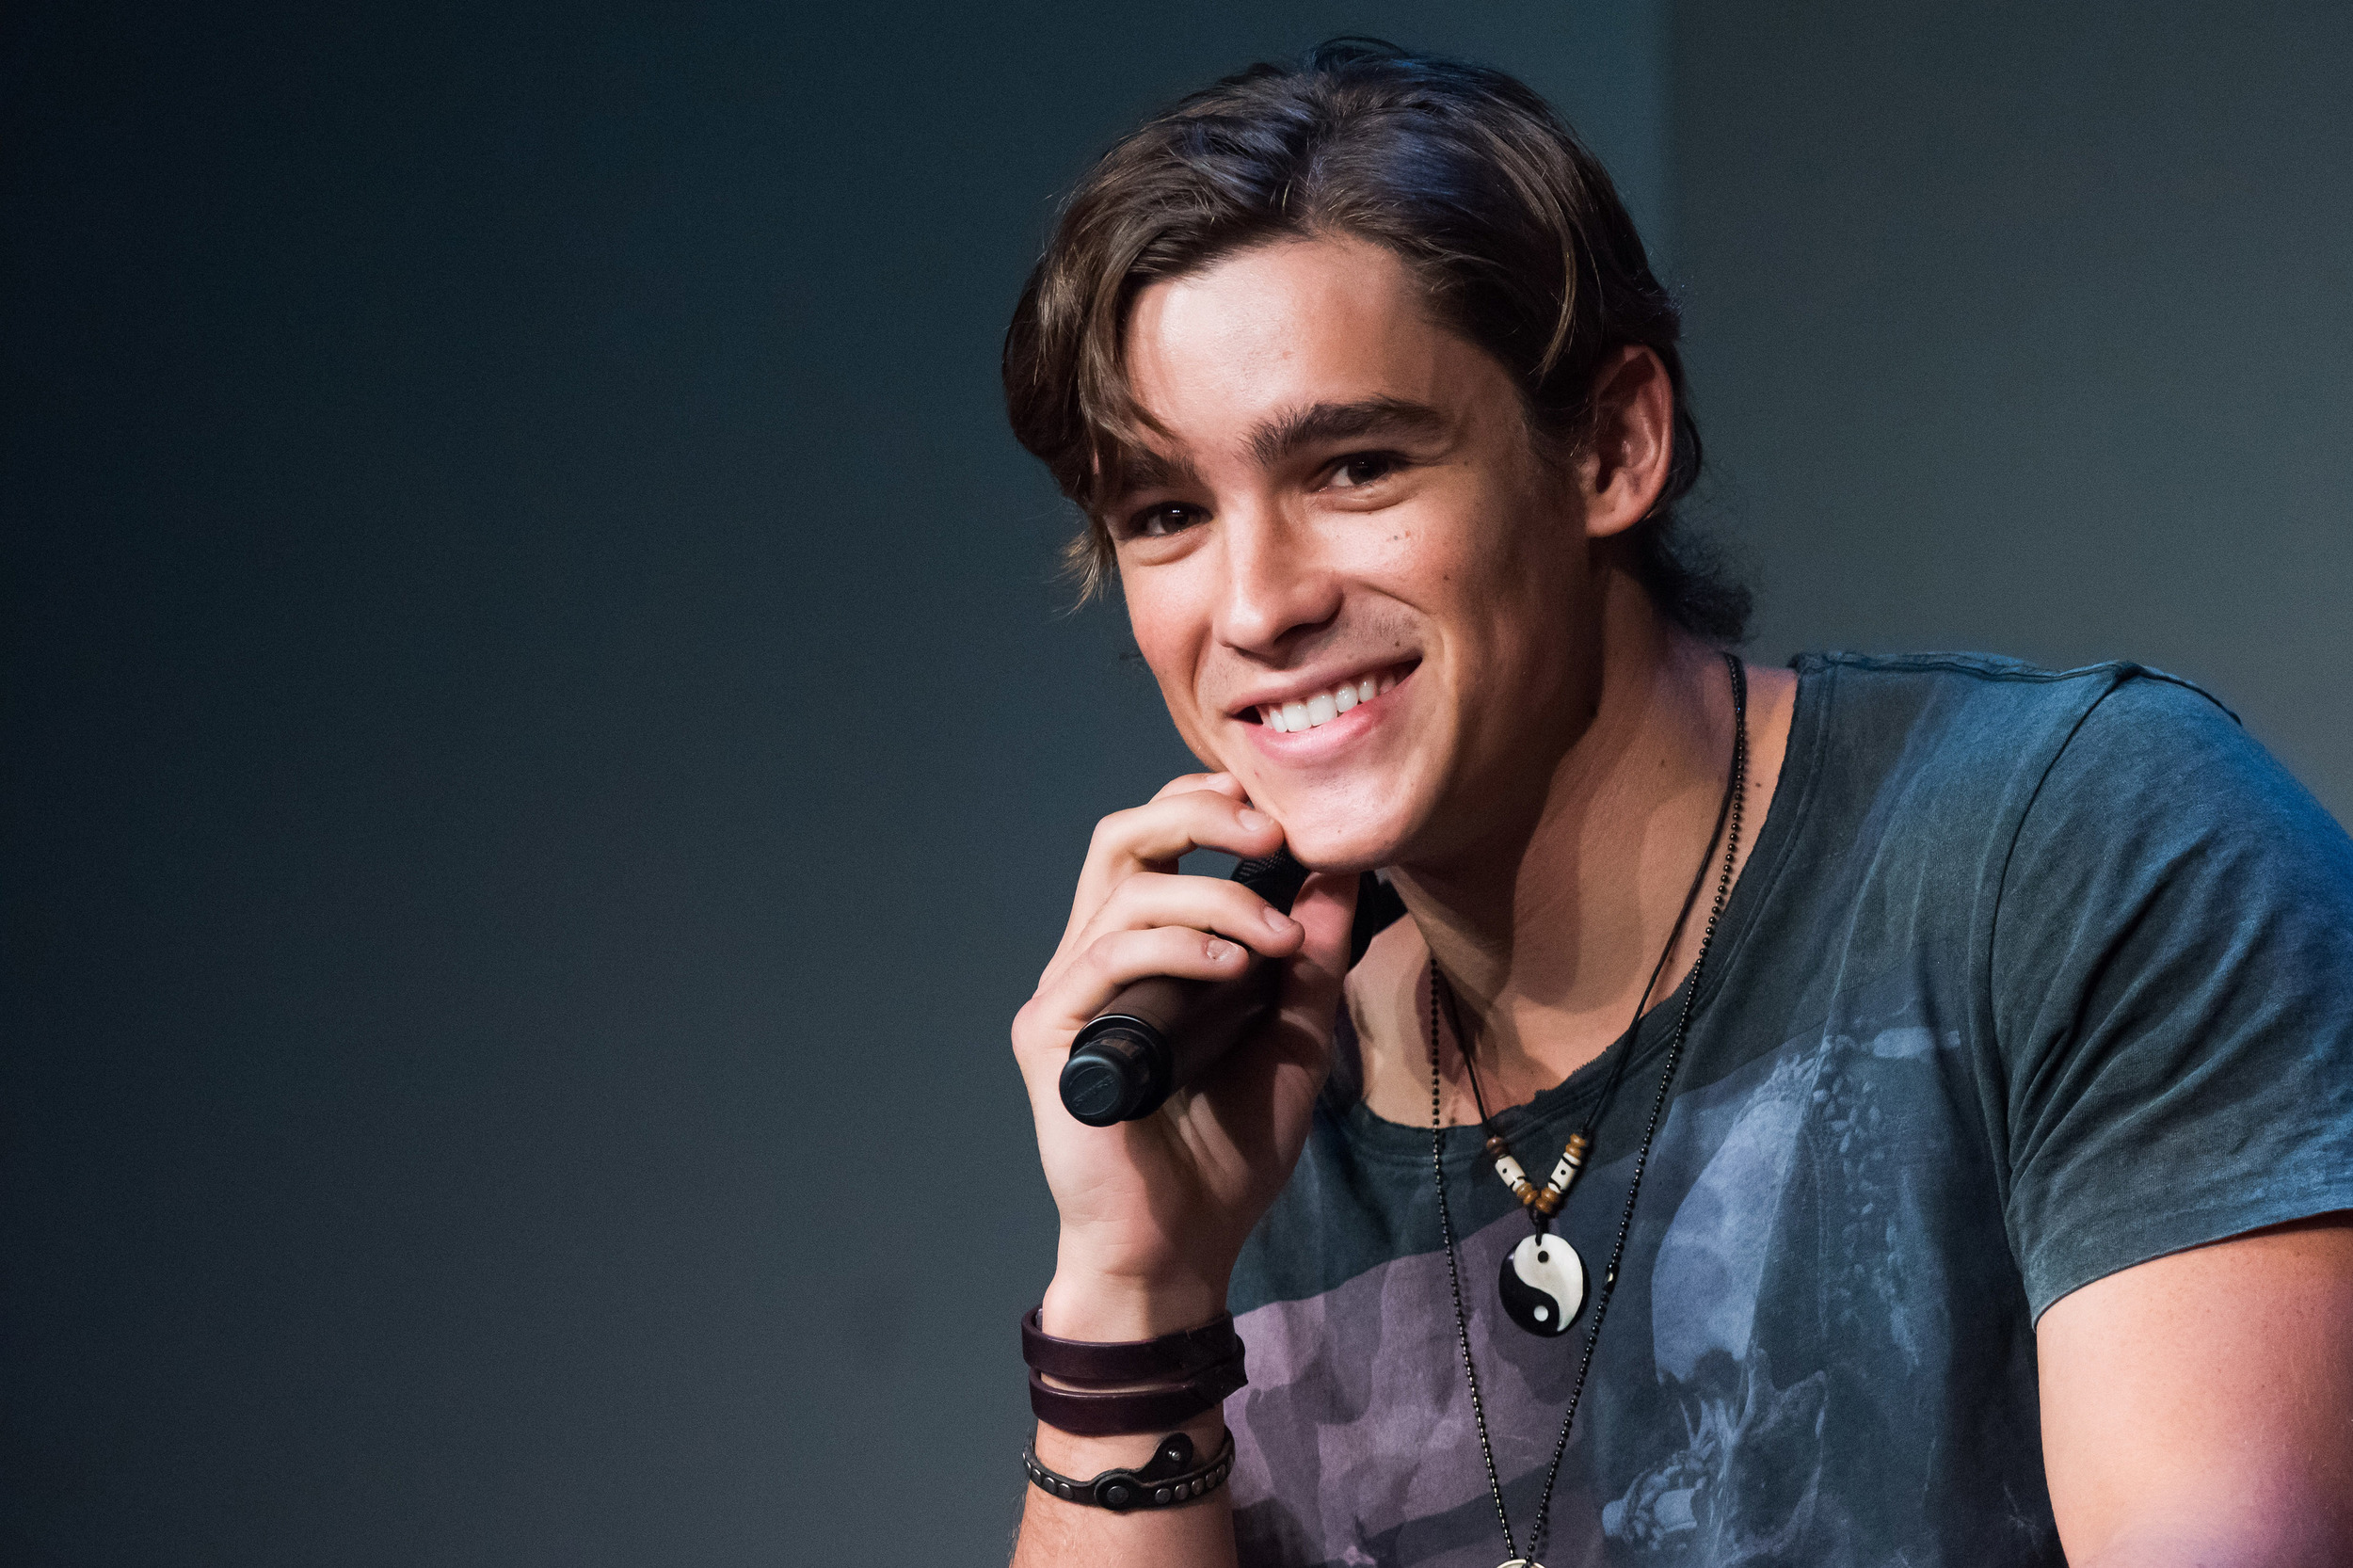 brenton thwaites fansitebrenton thwaites личная жизнь, brenton thwaites 2016, brenton thwaites wife, brenton thwaites blue lagoon, brenton thwaites instagram, brenton thwaites orlando bloom, brenton thwaites gif, brenton thwaites pirates of caribbean, brenton thwaites films, brenton thwaites family, brenton thwaites biography, brenton thwaites vk, brenton thwaites chloe pacey, brenton thwaites ferragamo, brenton thwaites and elle fanning, brenton thwaites interview, brenton thwaites filme, brenton thwaites fansite, brenton thwaites milan, brenton thwaites abs